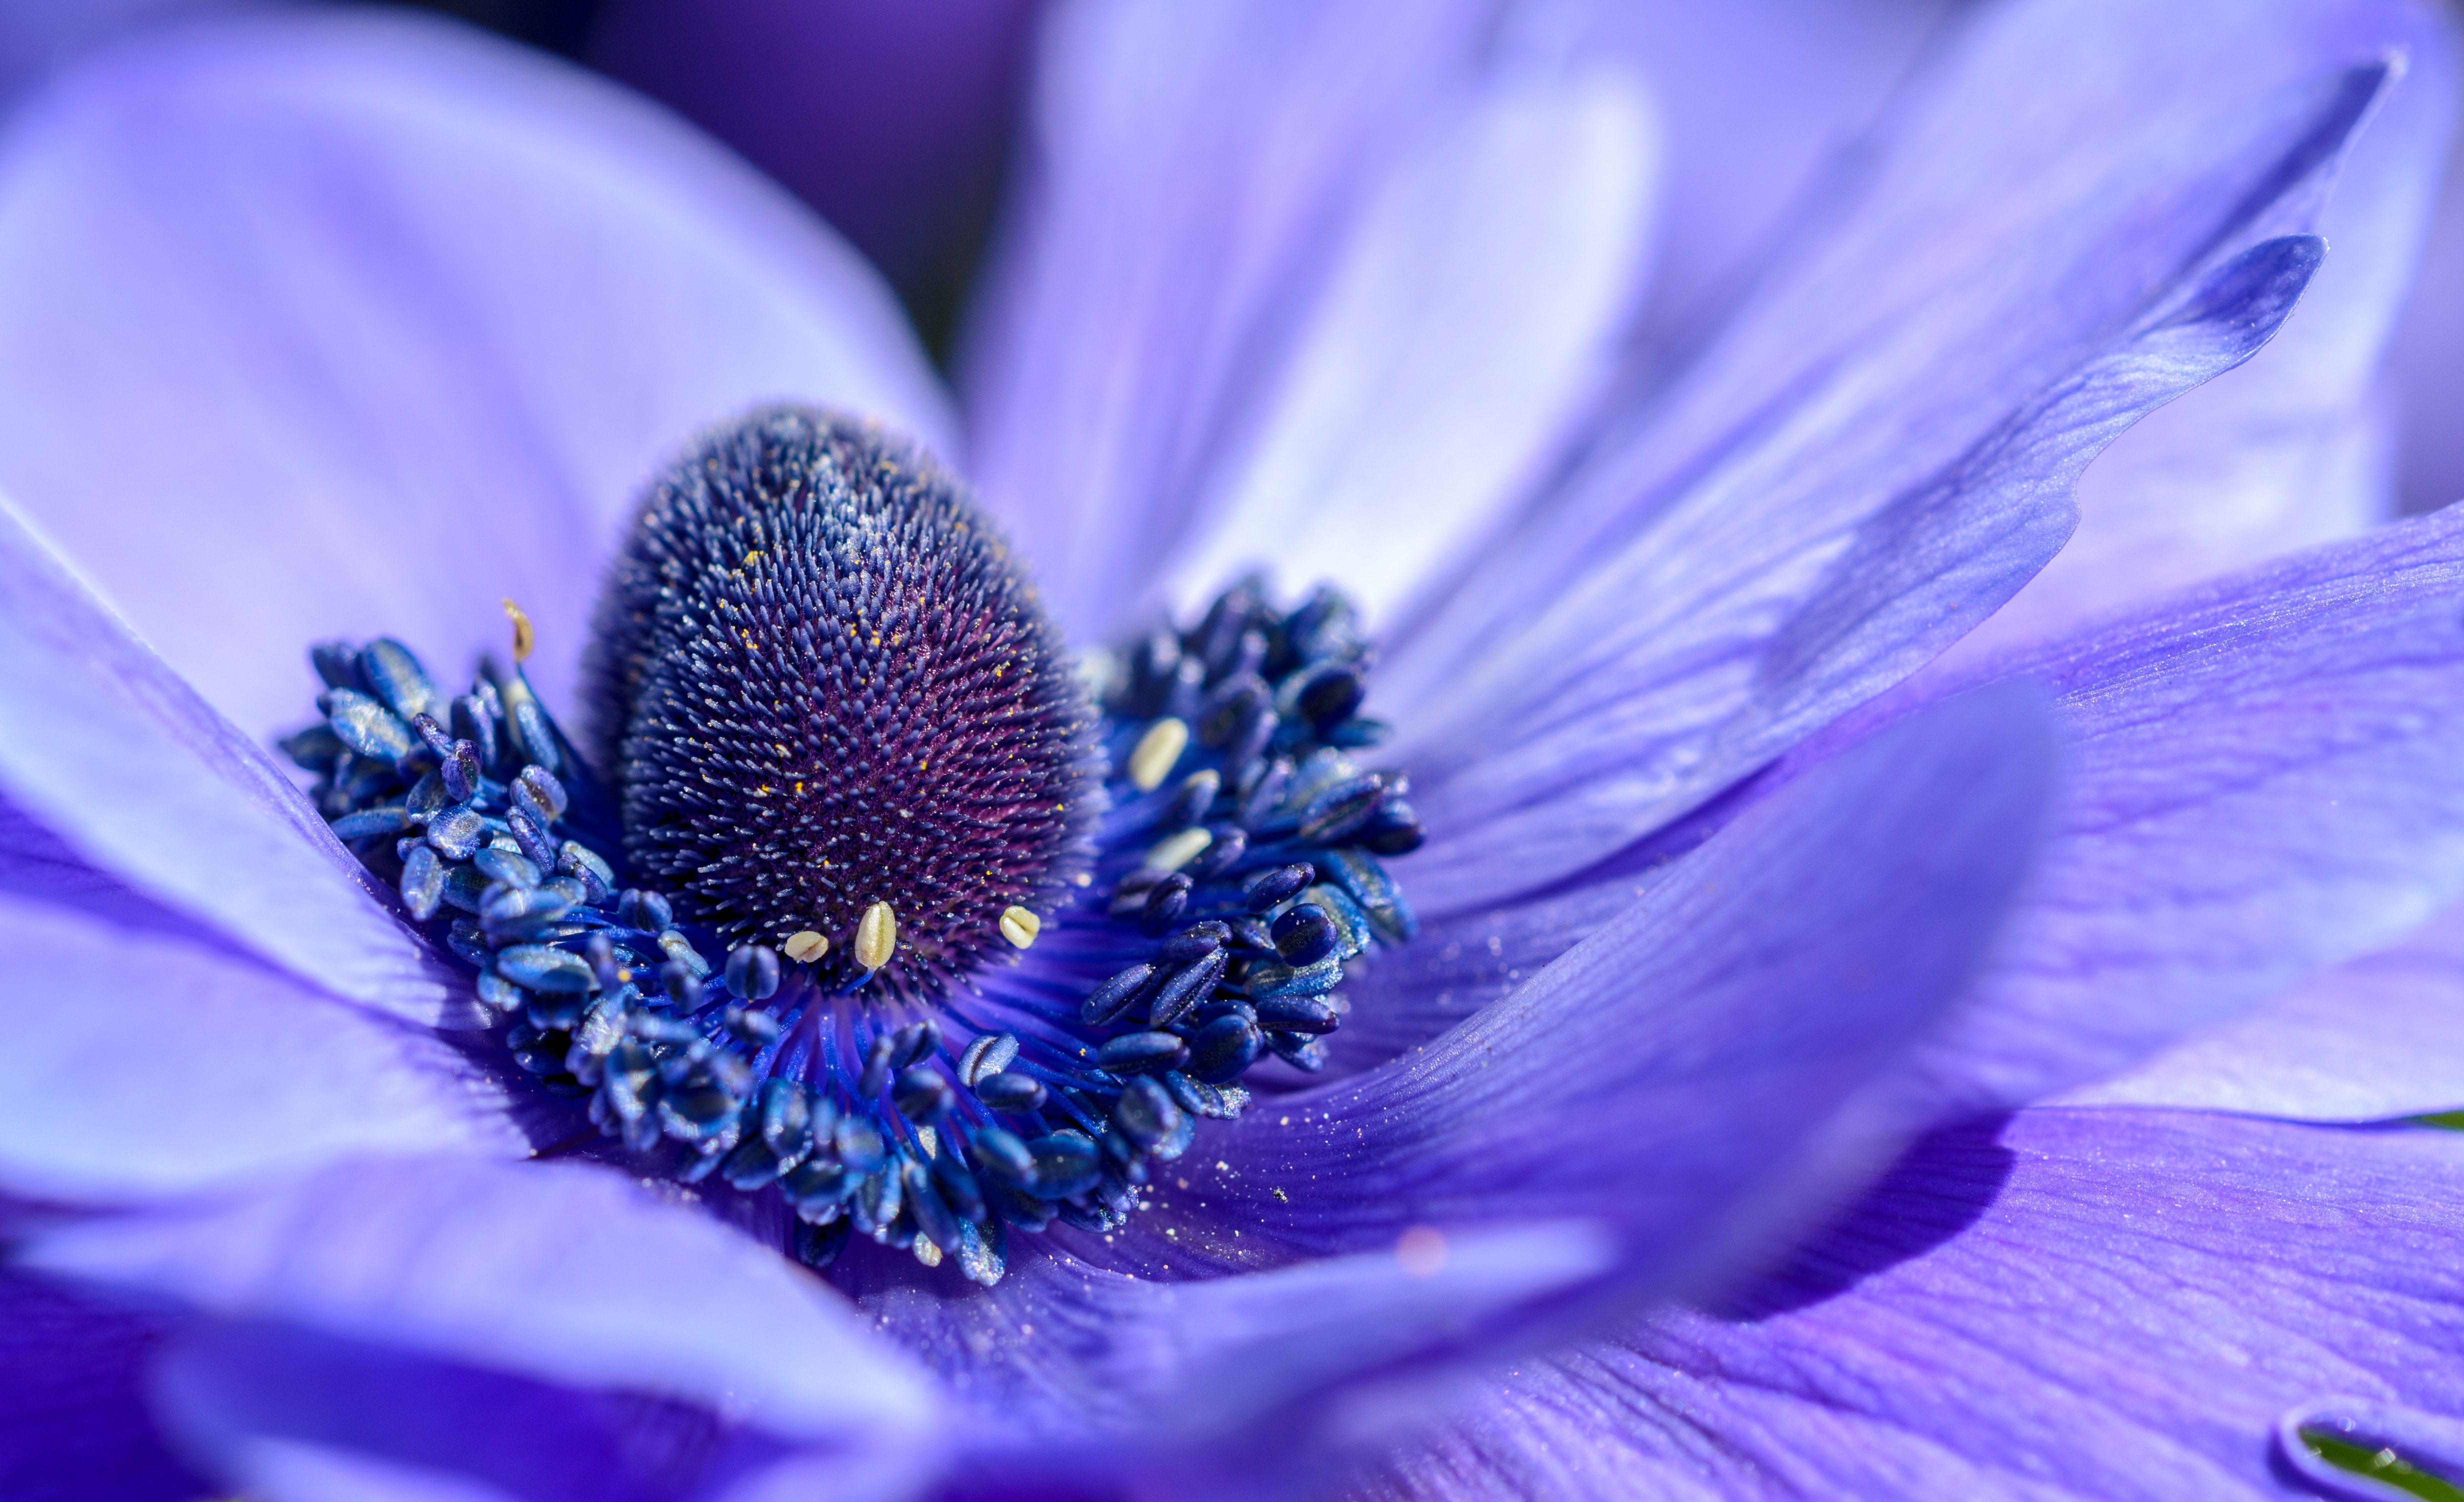 Closeup of a blue flower